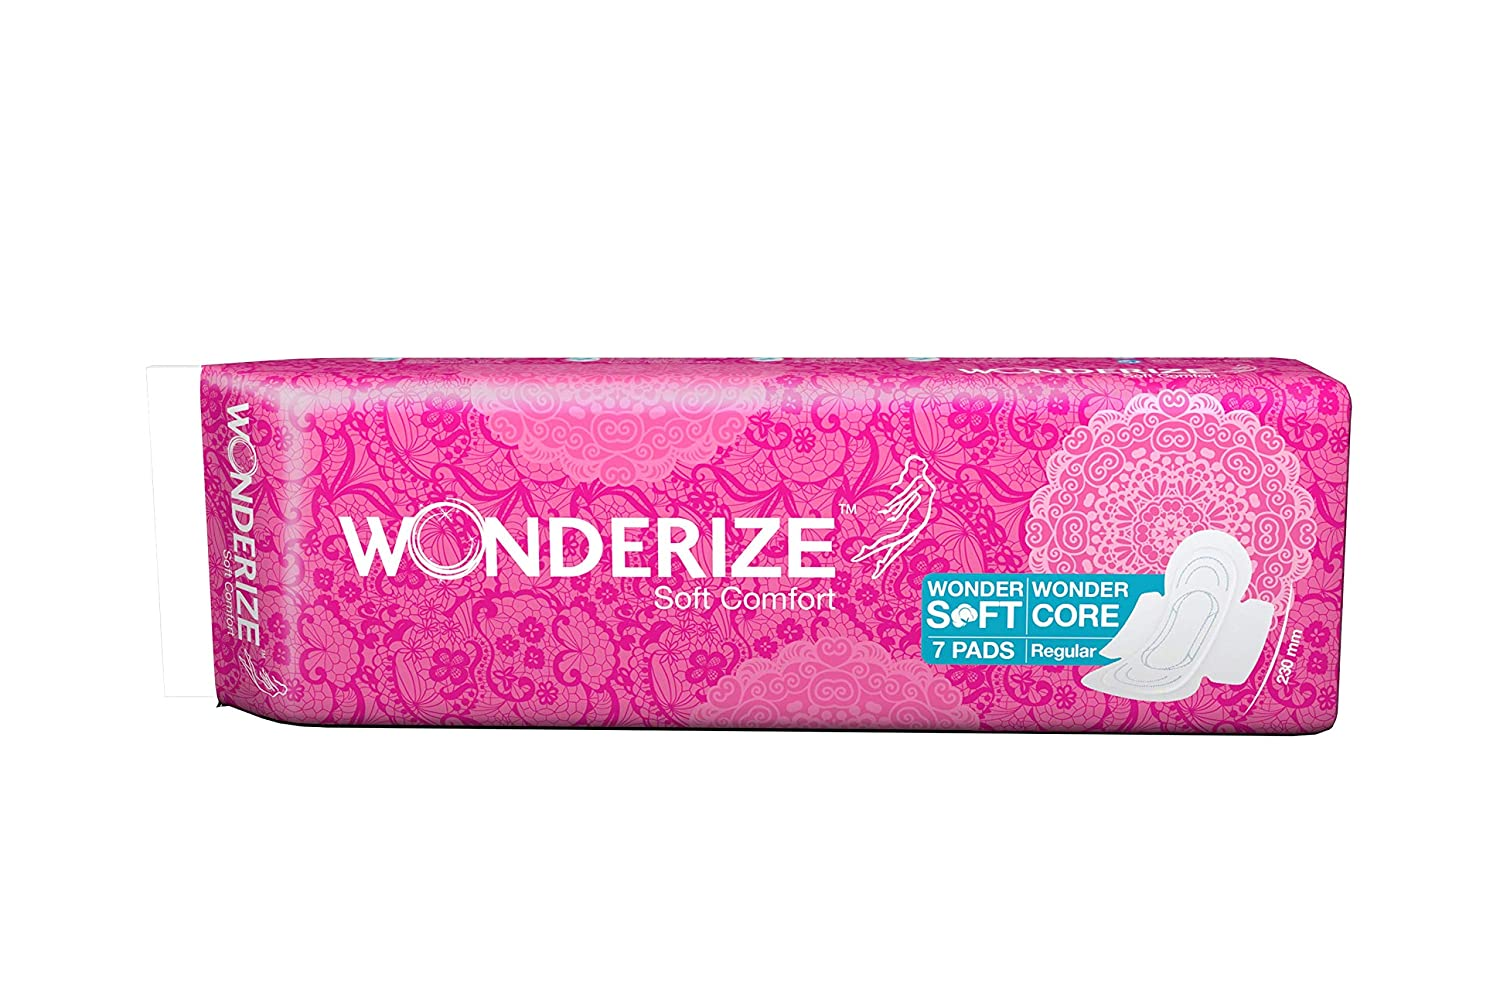 Wonderize Soft Comfort Regular 7 pads